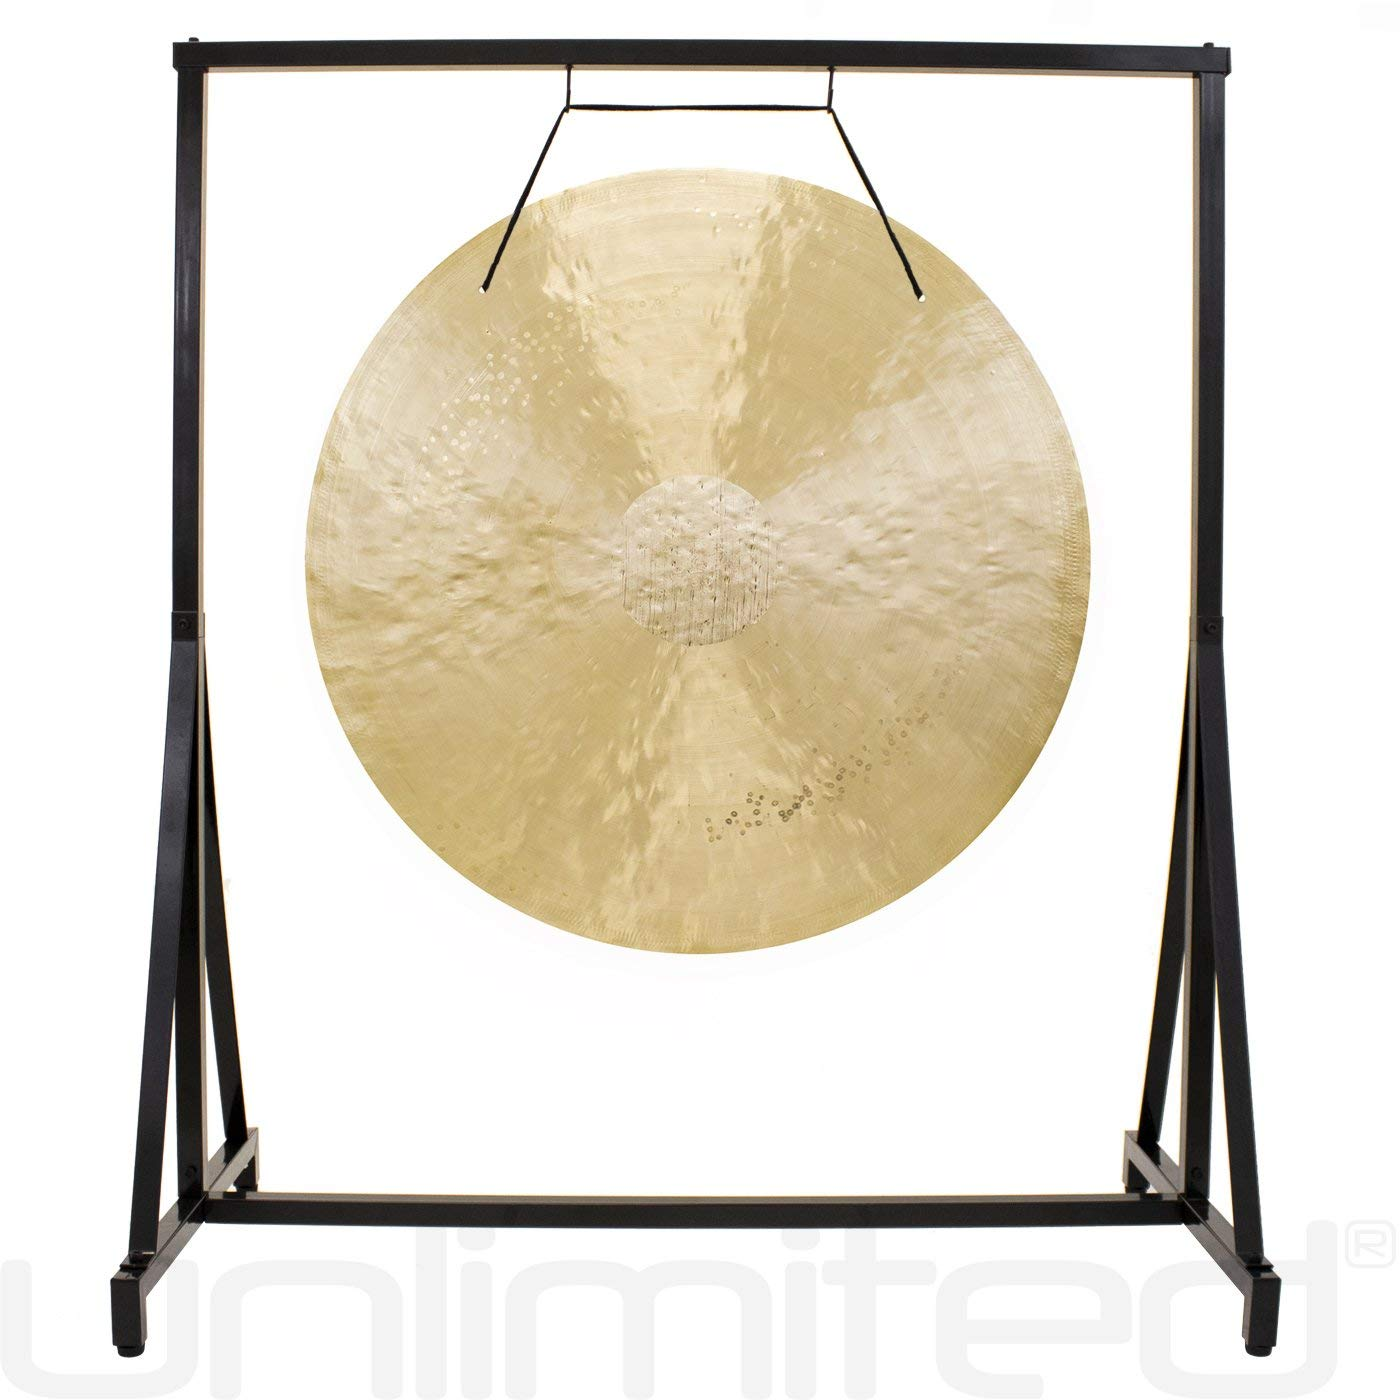 30 to 40 Gongs on the Everyday Miracle Gong Stand